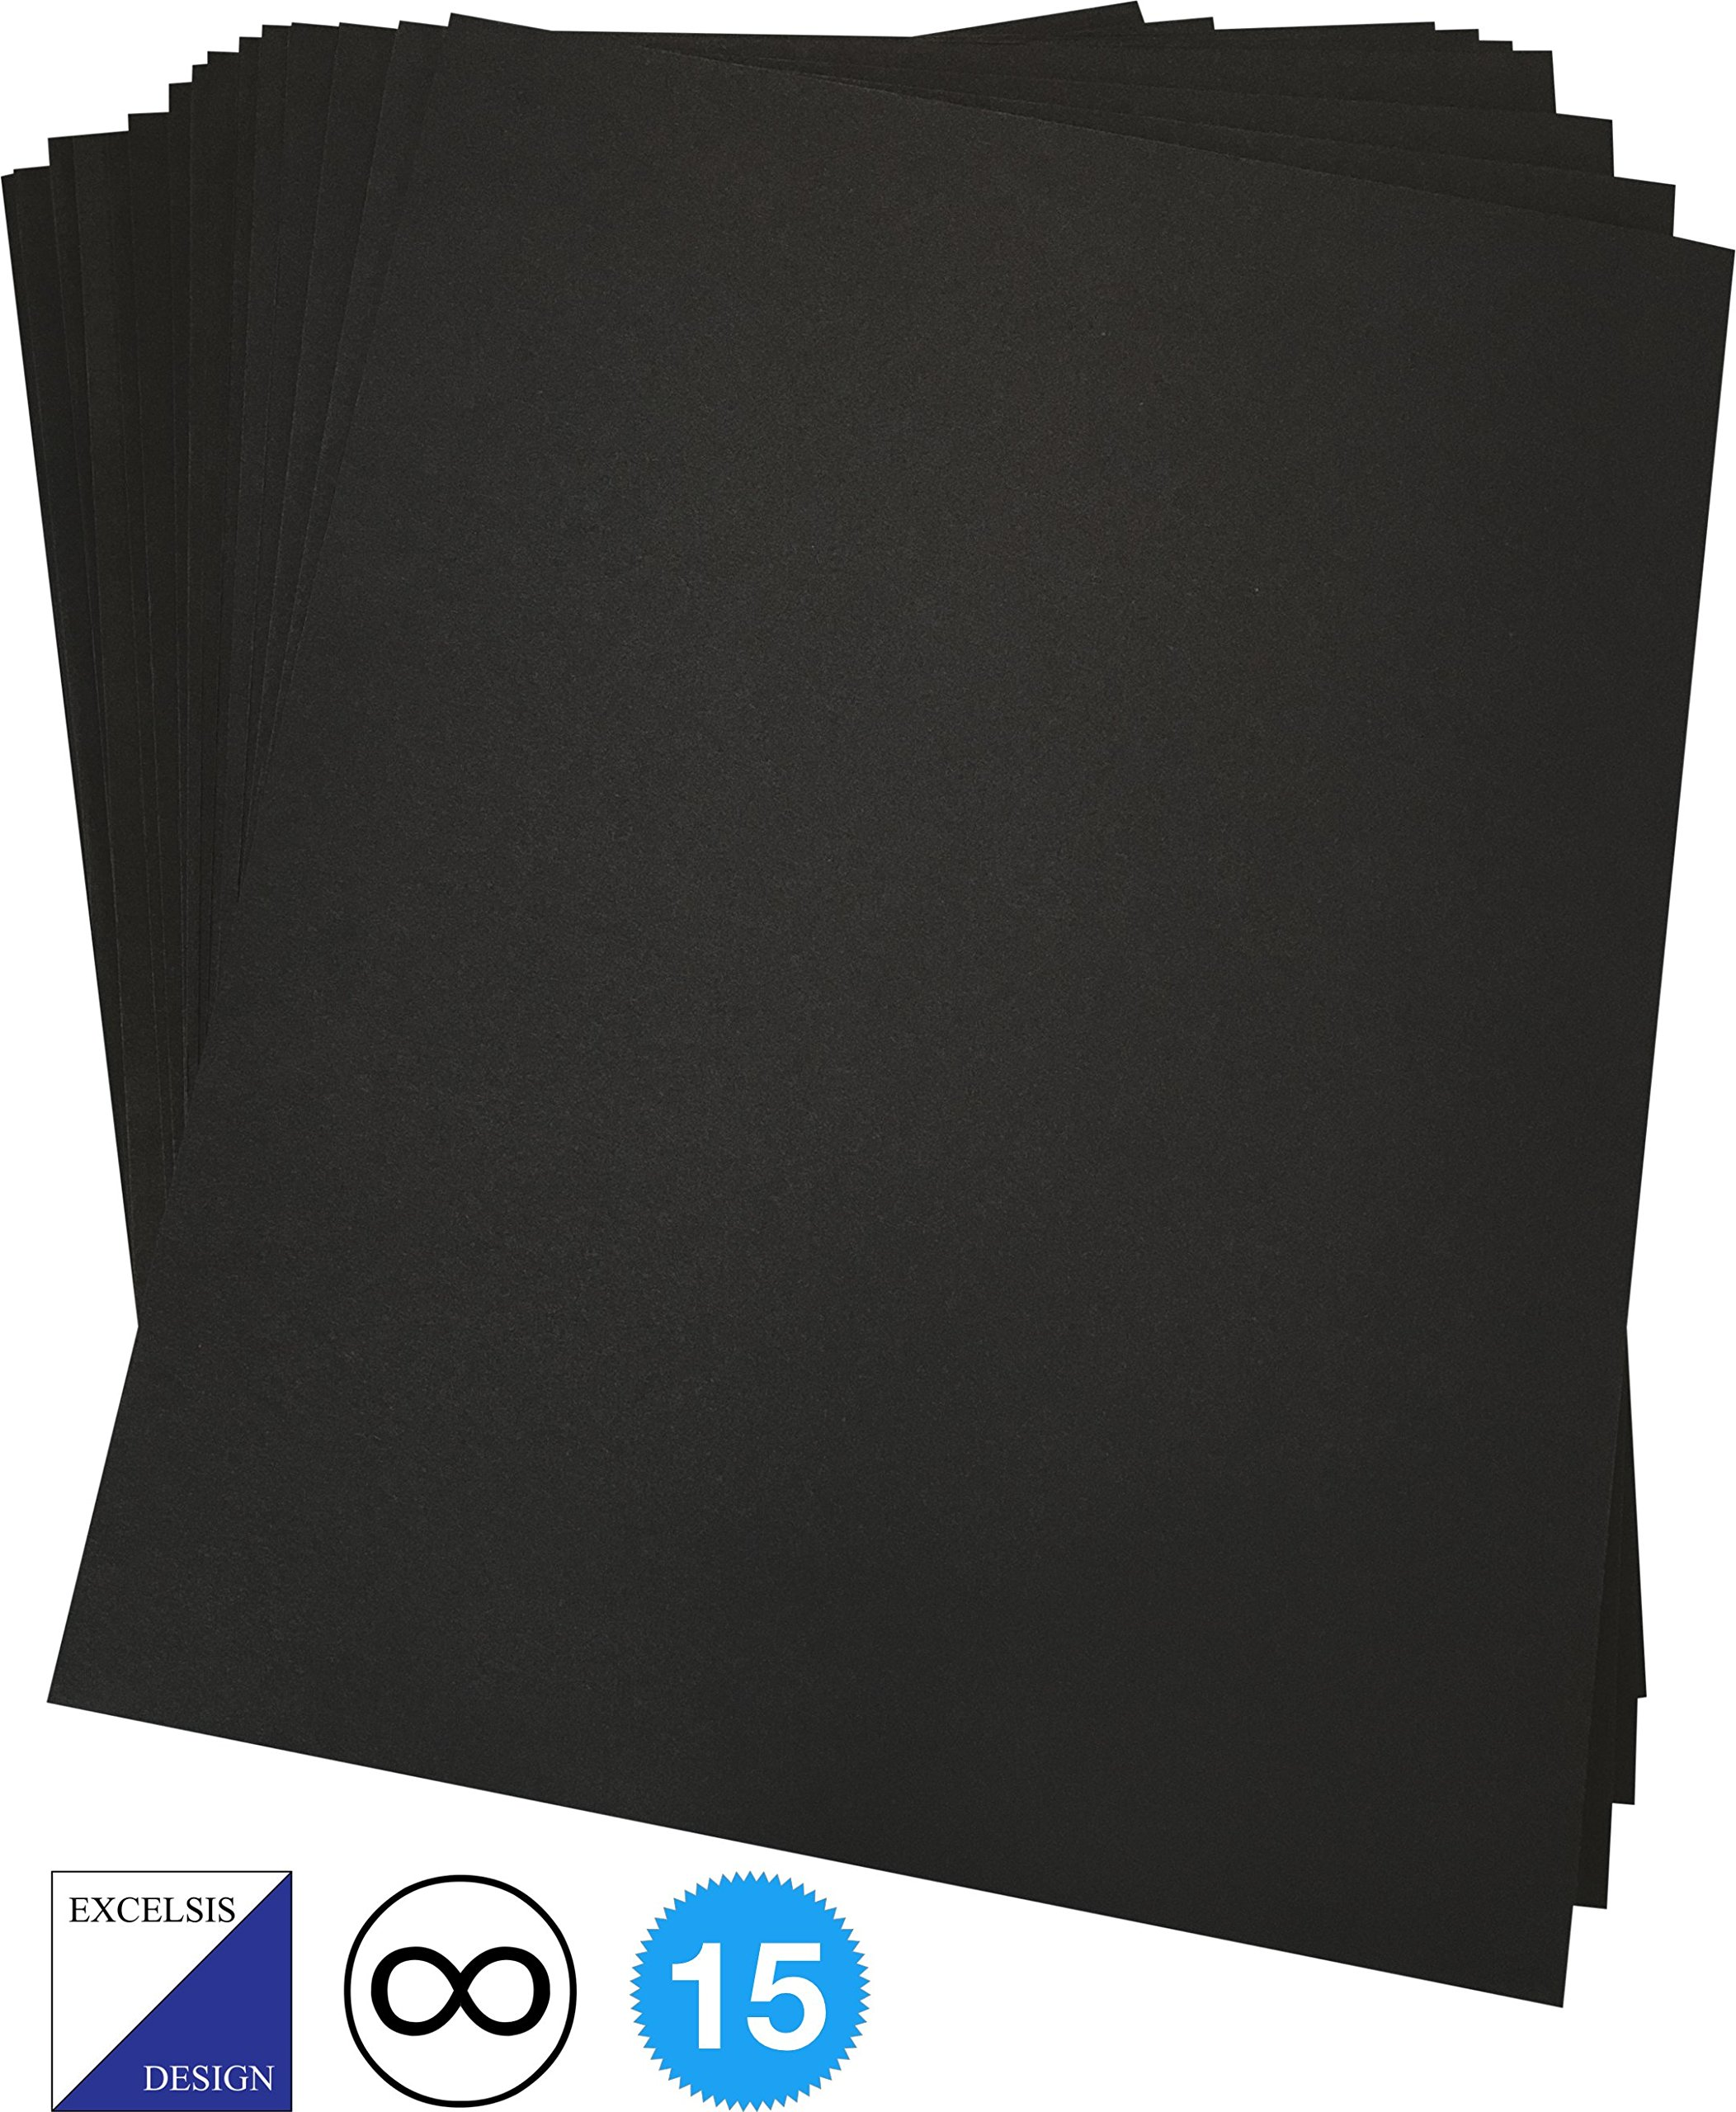 Excelsis Design, Pack of 15, Foam Boards (Acid-Free), 8x10 Inches, 3/16 Inch Thick Mat, Black with Black Core (Foam Core Backing Boards, Double-Sided Sheets)